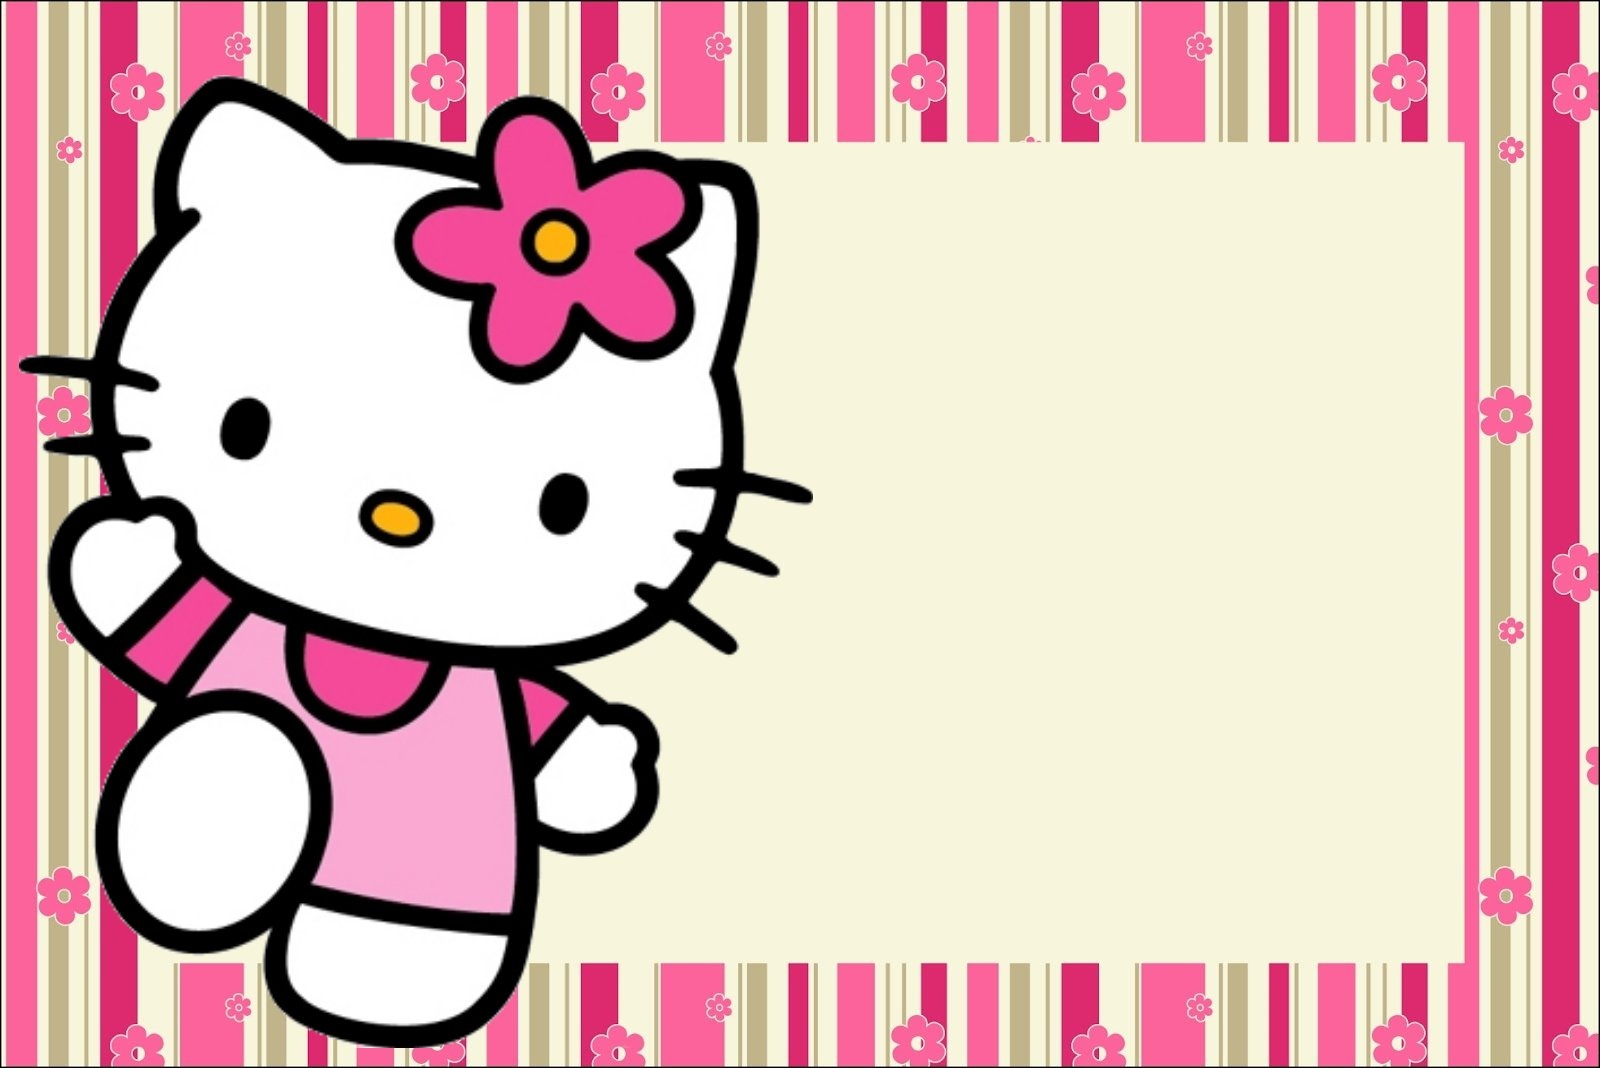 Hello Kitty With Flowers: Free Printable Invitations. - Oh My Fiesta - Hello Kitty Labels Printable Free